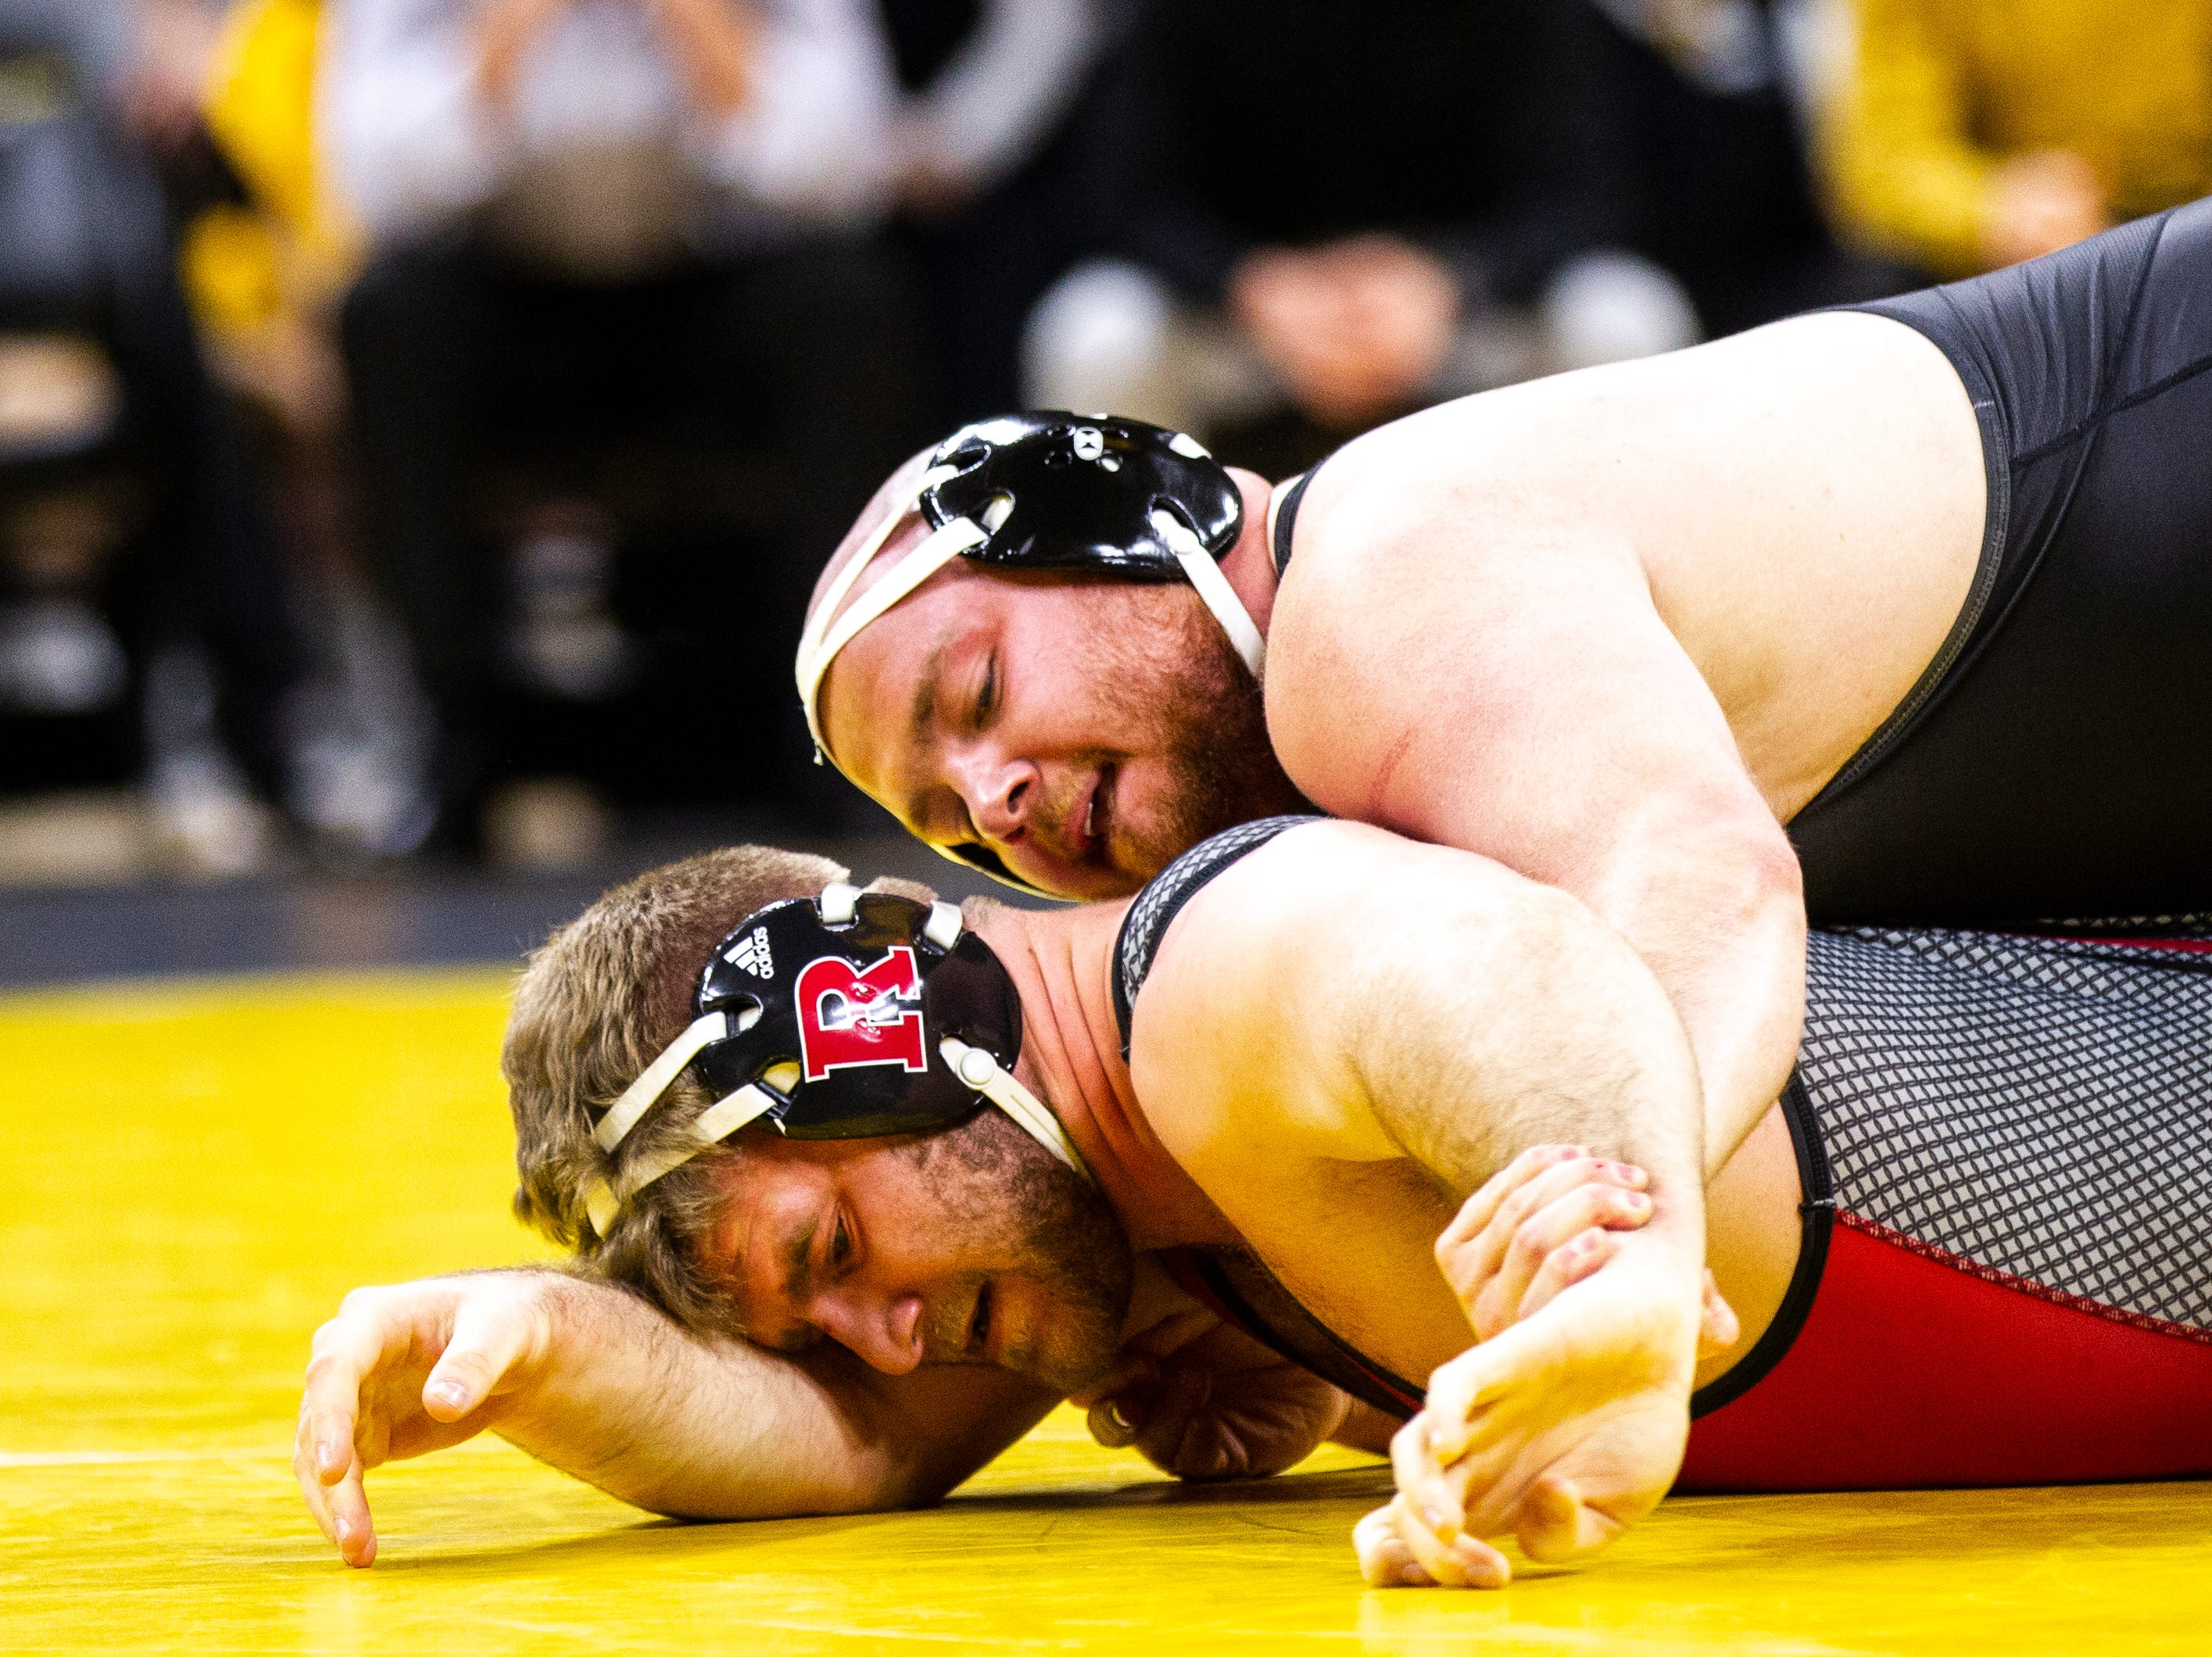 Iowa's Sam Stoll, top, wrestles Rutgers' Christian Colucci at 285 during a NCAA Big Ten Conference wrestling dual on Friday, Jan. 18, 2019, at Carver-Hawkeye Arena in Iowa City, Iowa.